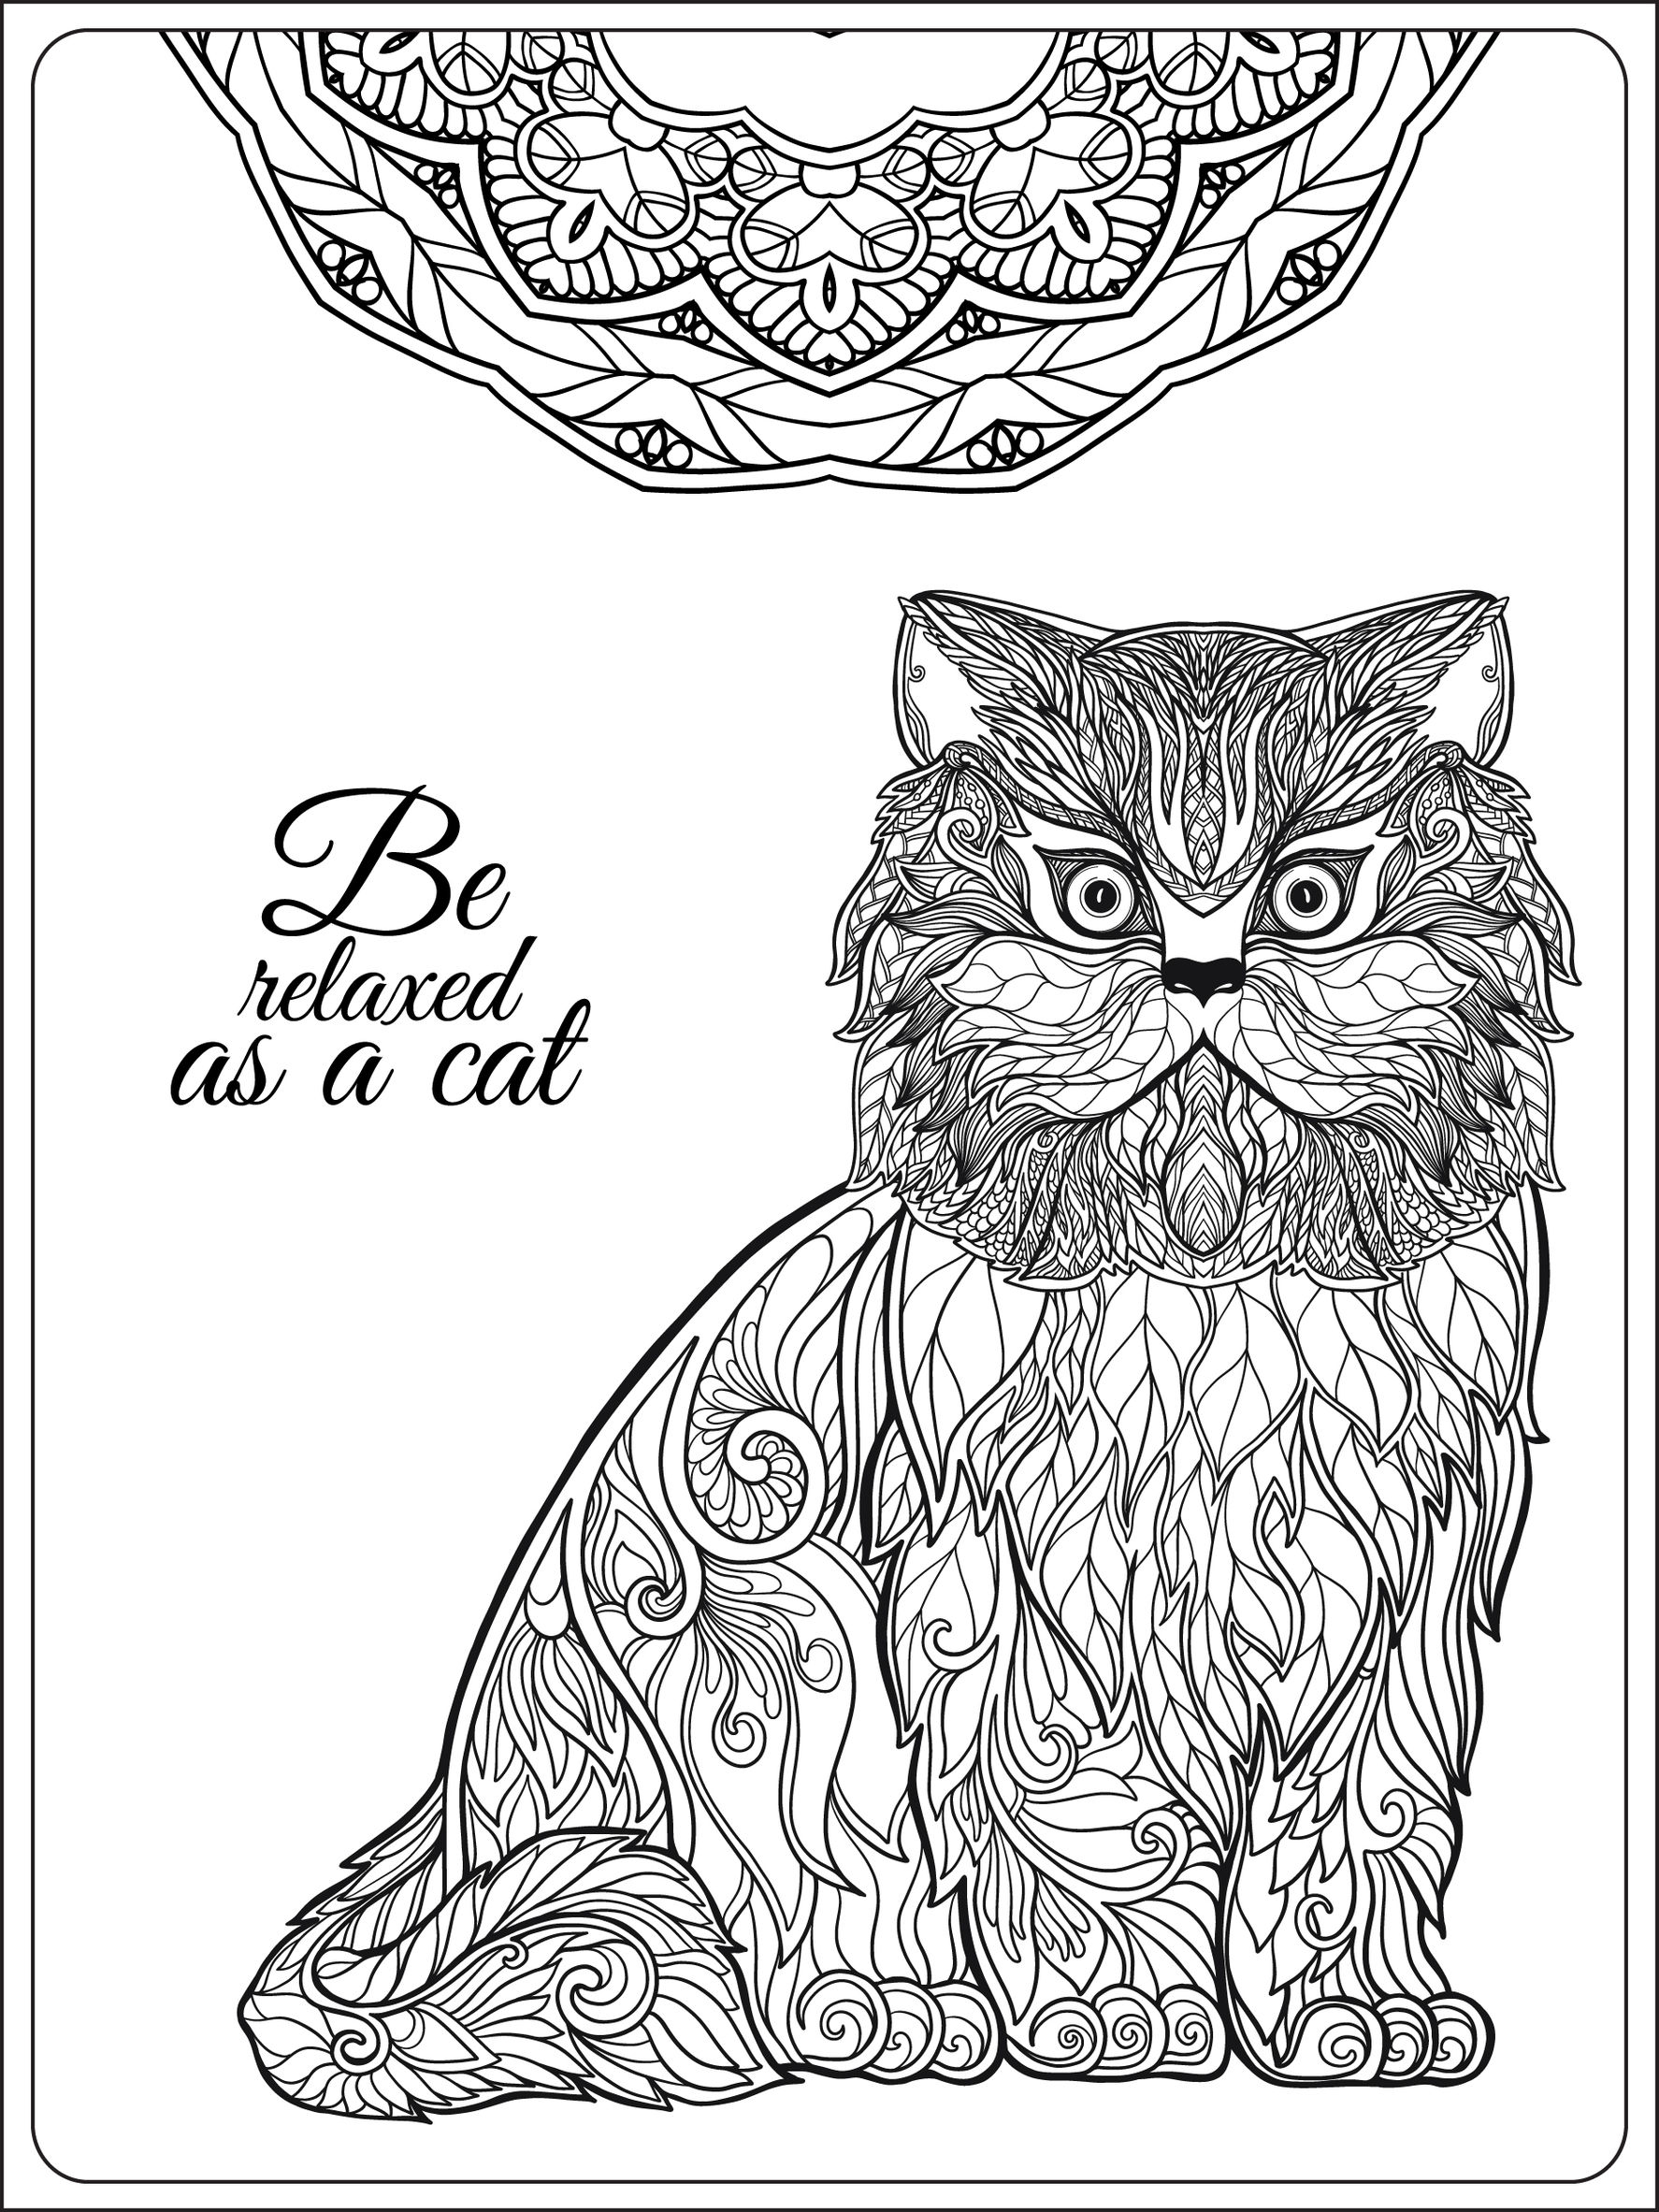 Coloring pages adults be relaxing as a cat by elena besedina